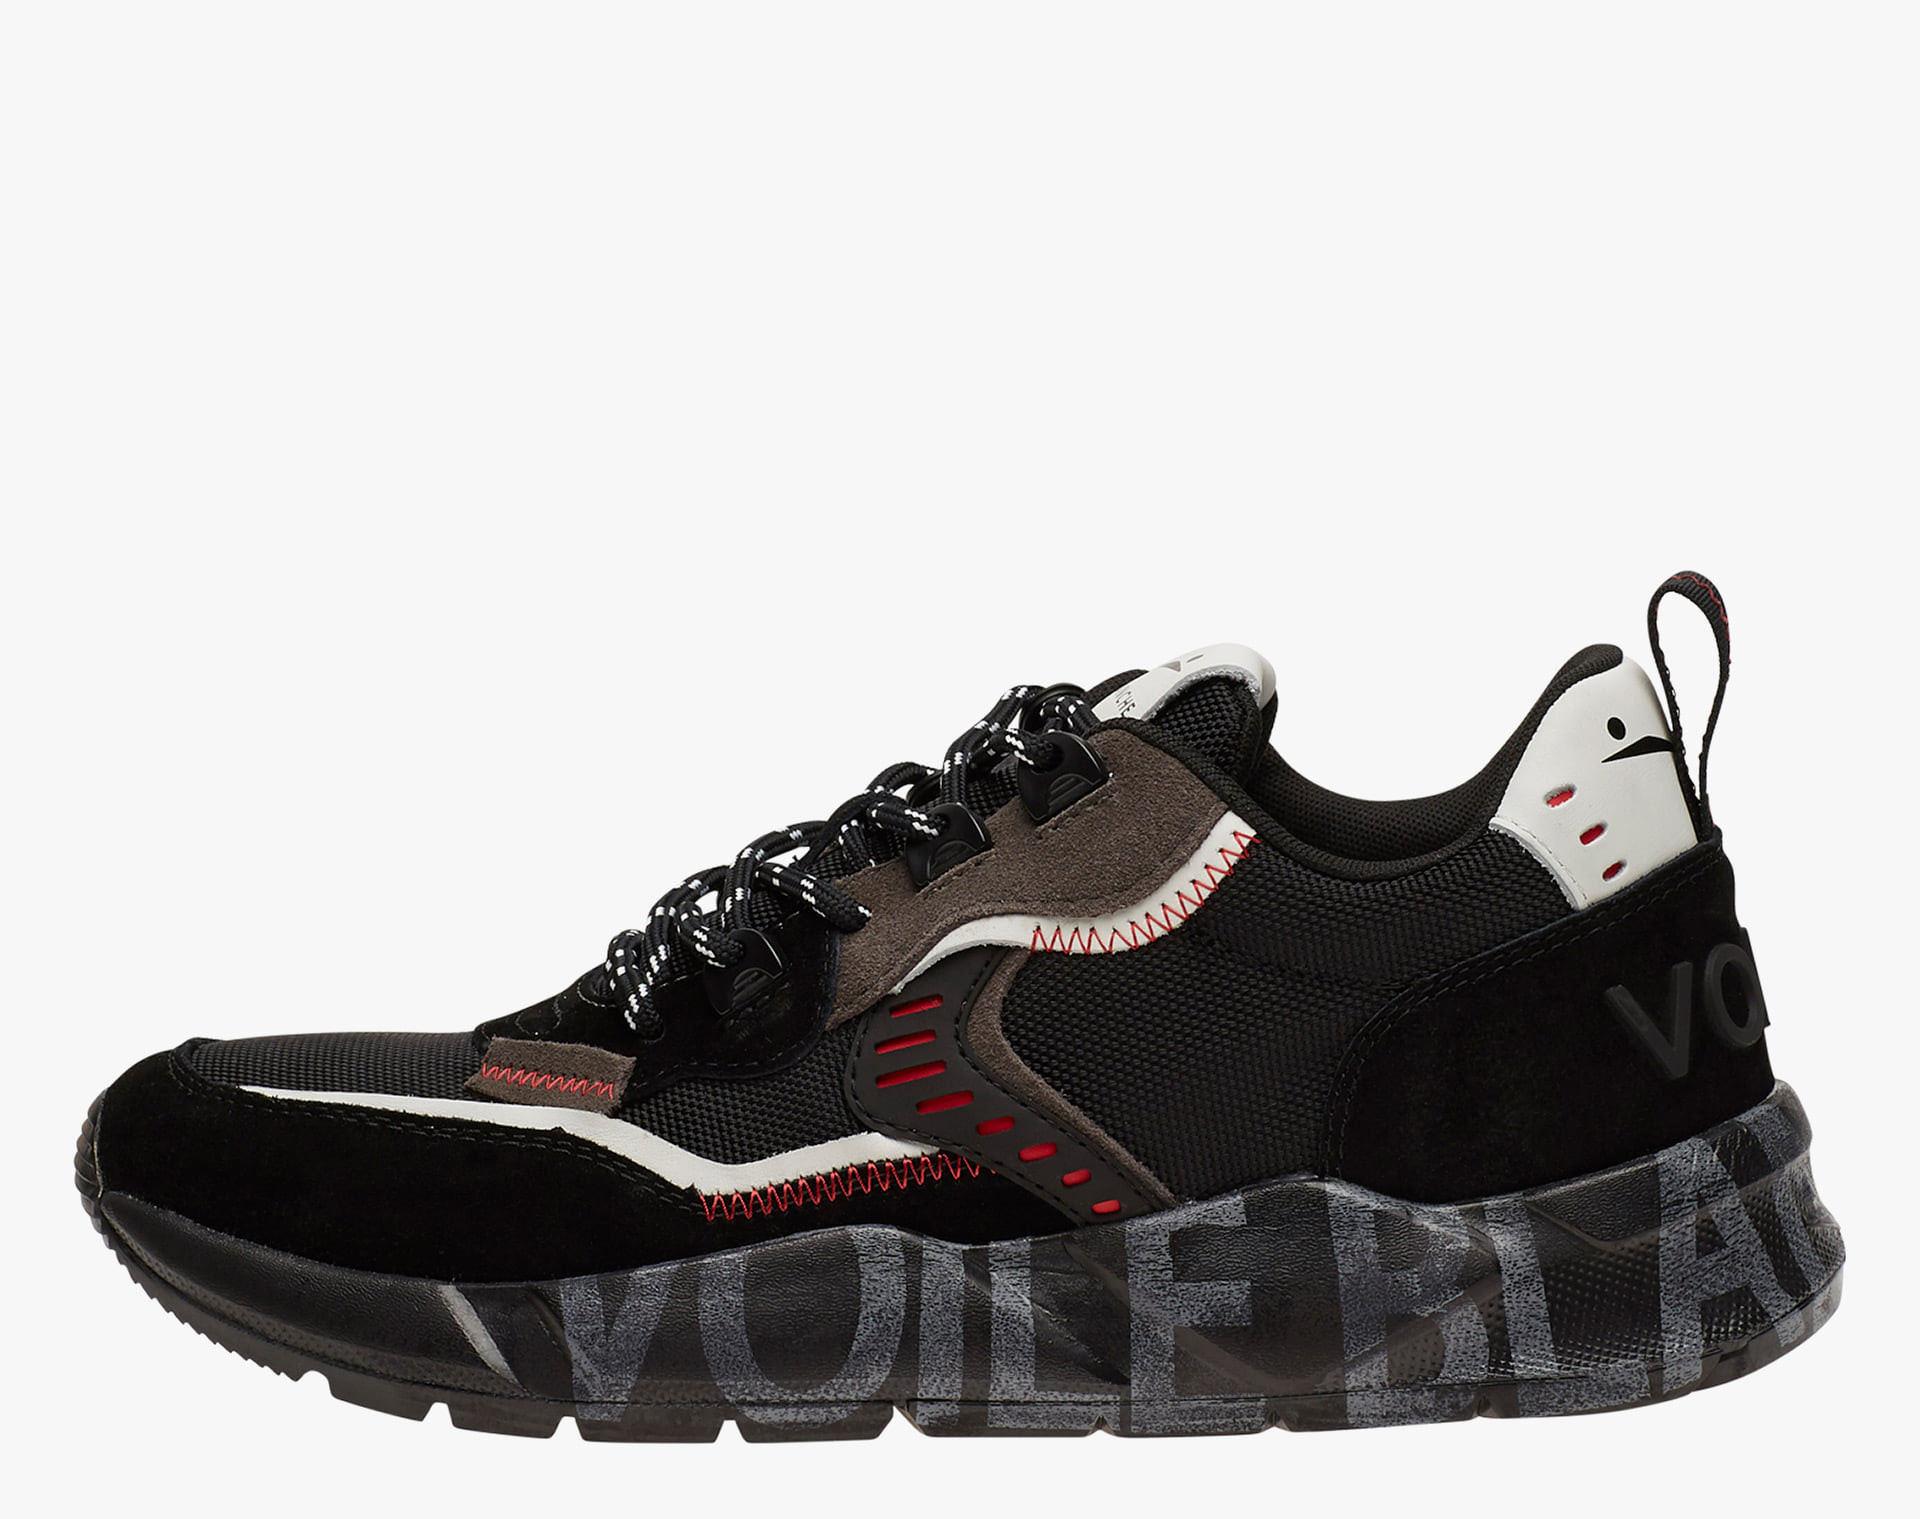 CLUB01 - Sneakers in leather and Cordura - Black